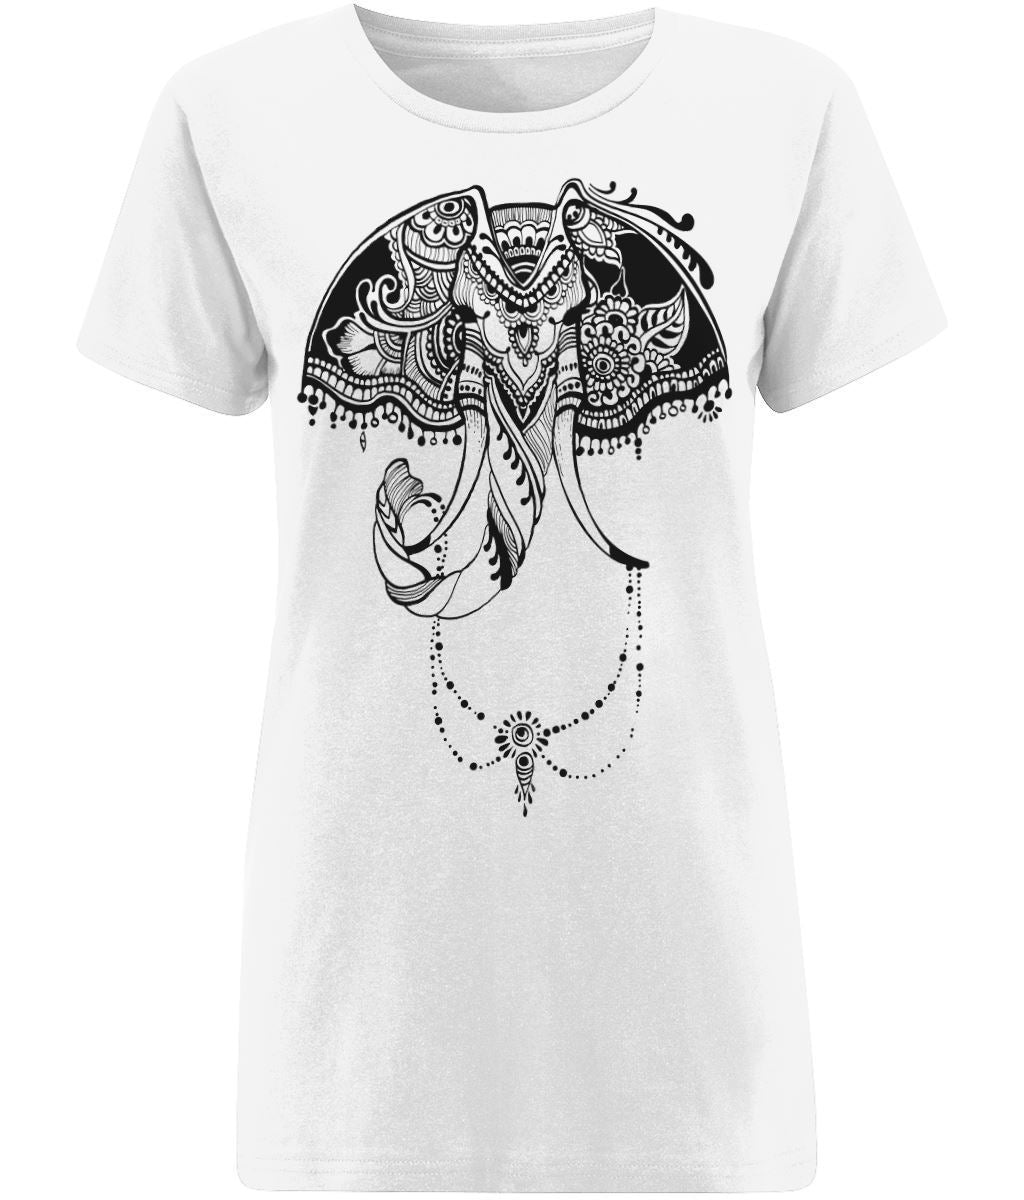 Bohemian Elephant T-shirt Clothing IndianBelieves X-Small White